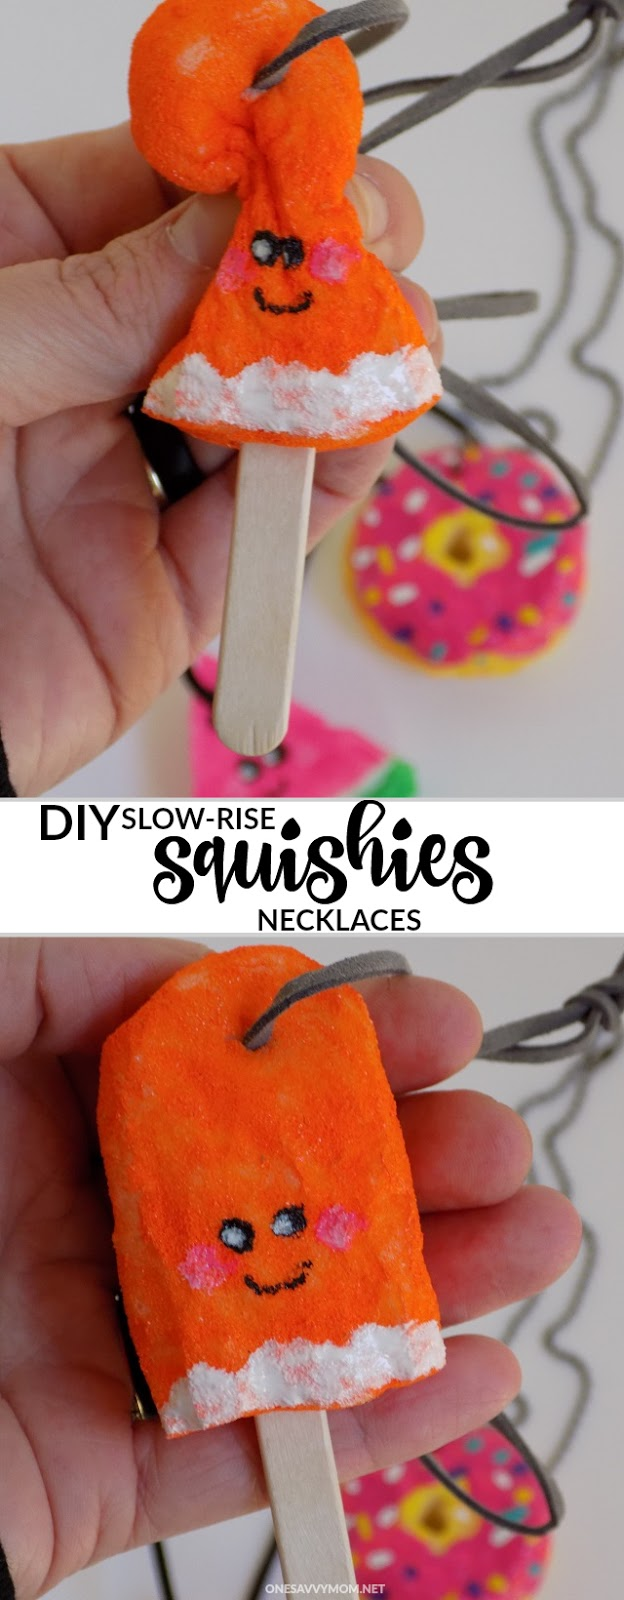 One Savvy Mom     NYC Area Mom Blog: DIY Squishies Necklaces + How To Make Your Own Squishy Toys!